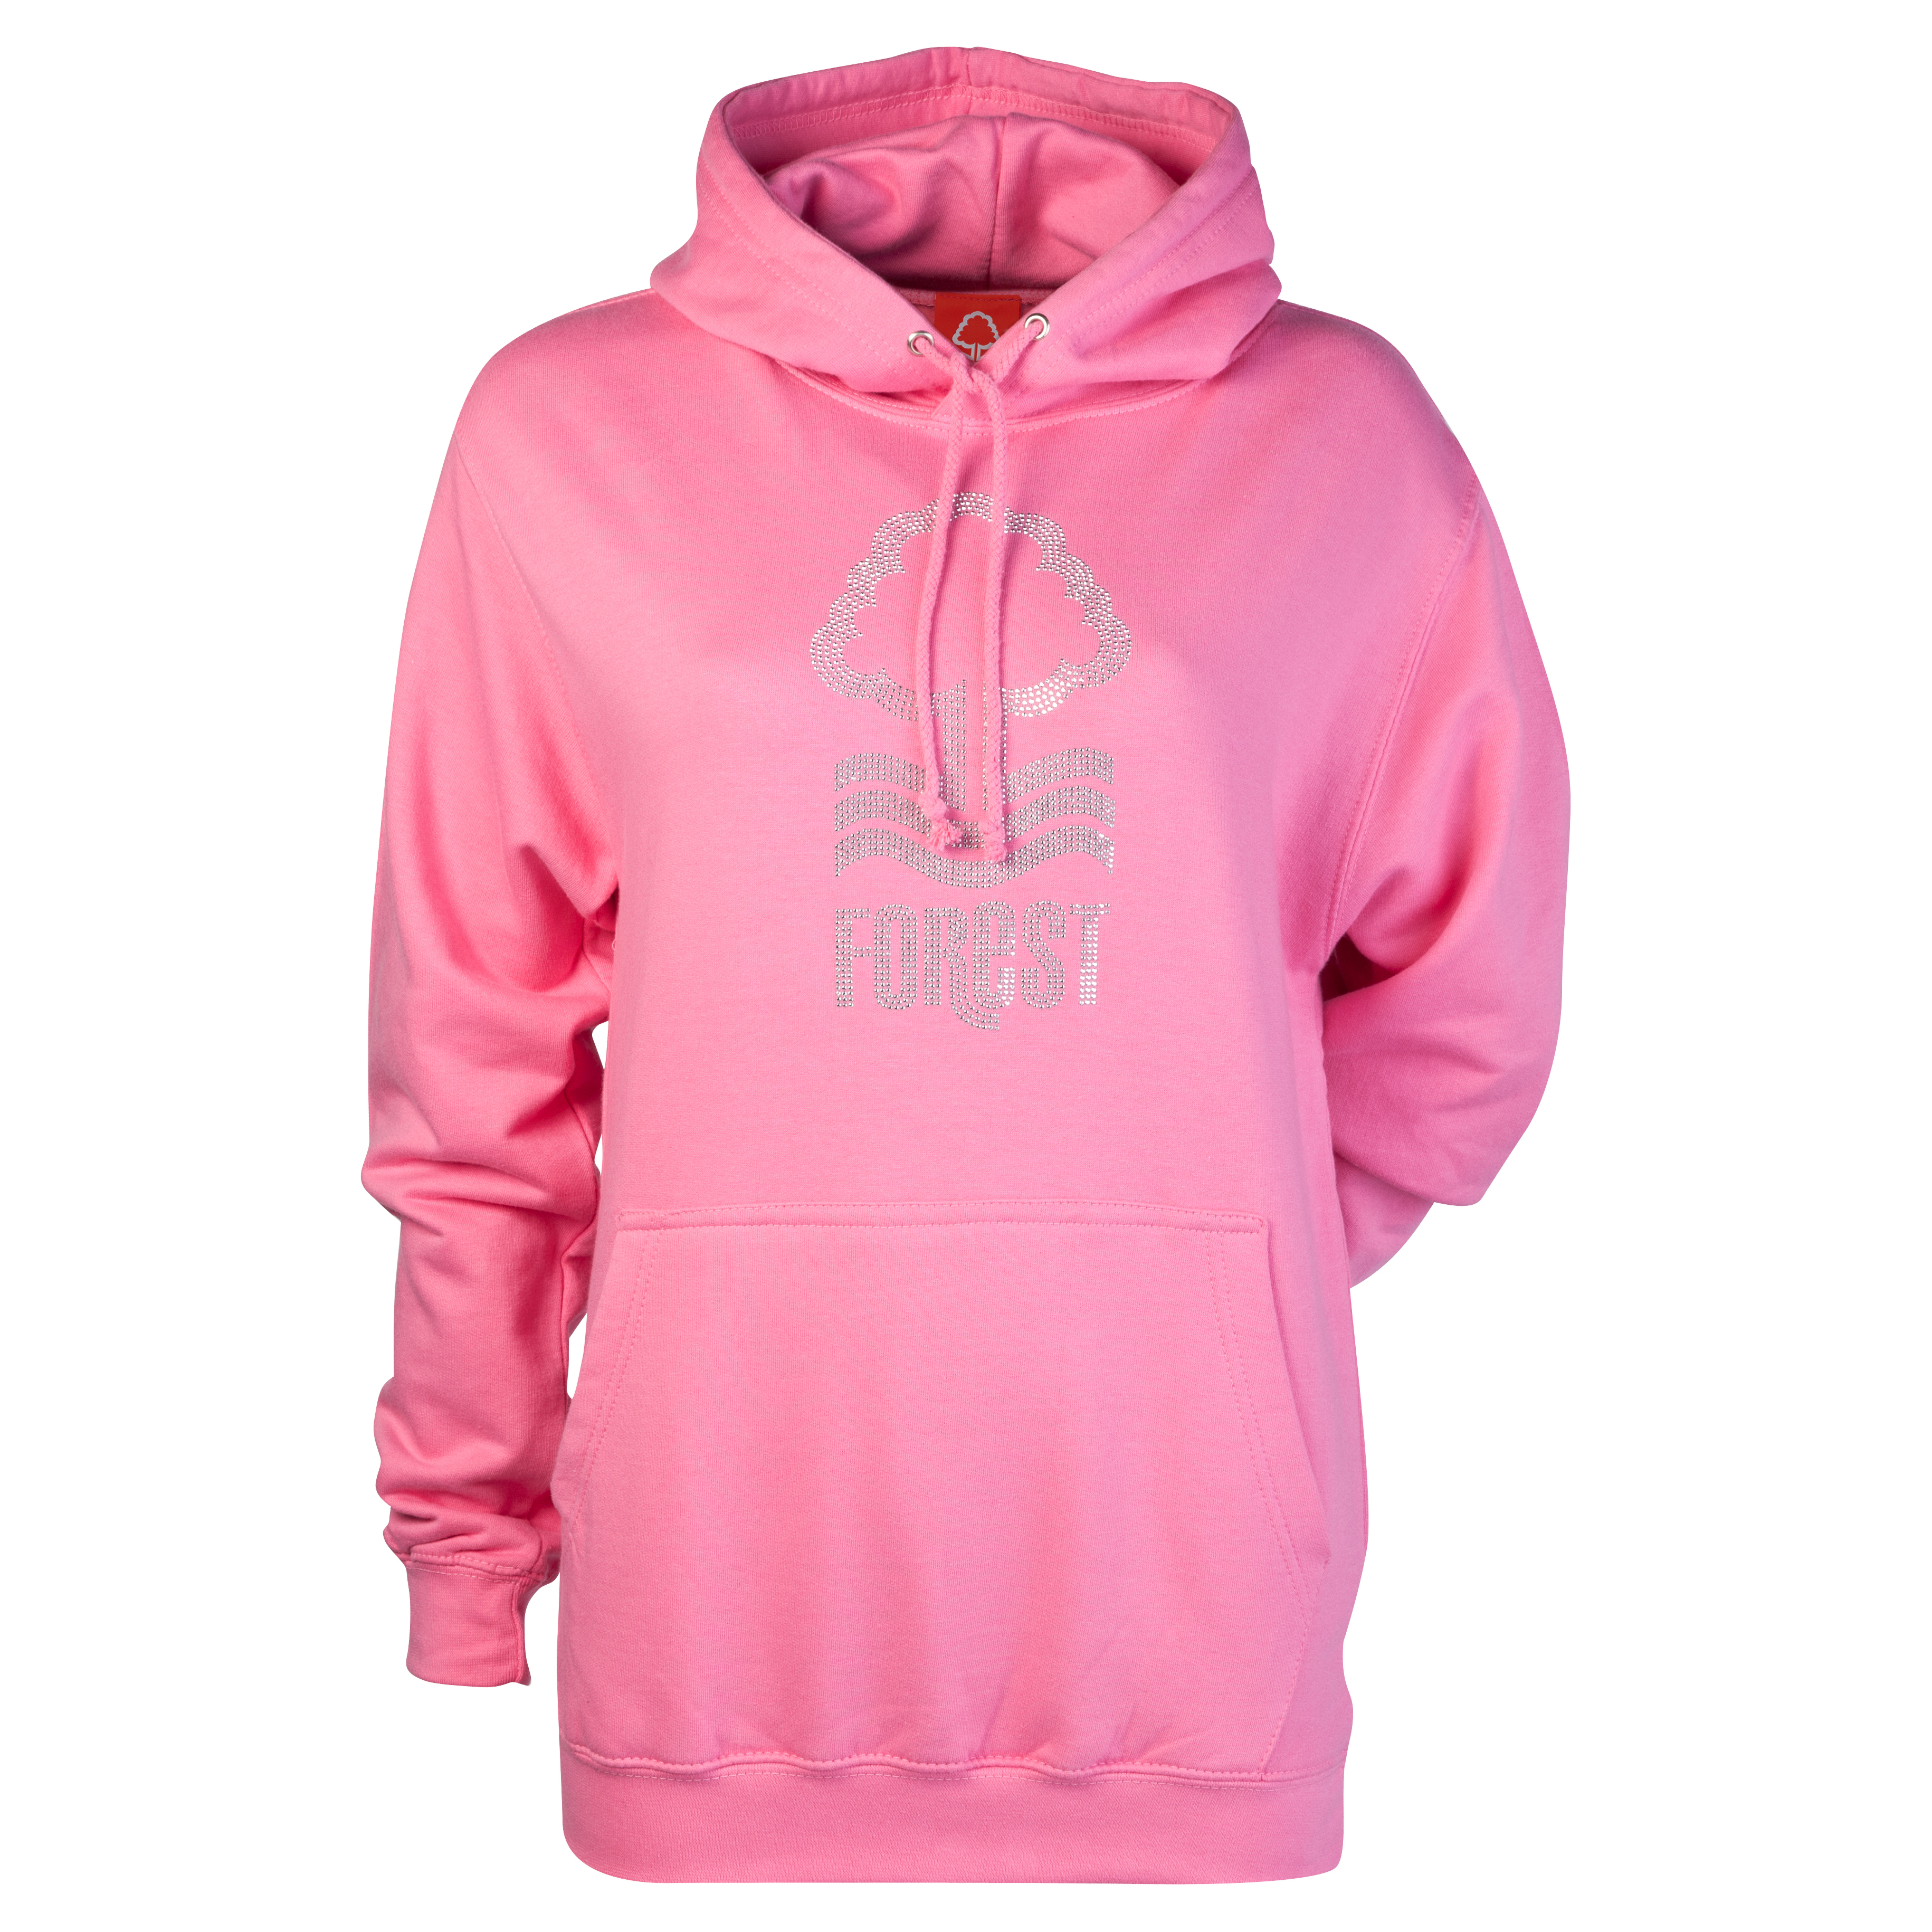 Nottingham Forest Rhinestone Hoodie - Candyfloss Pink - Womens